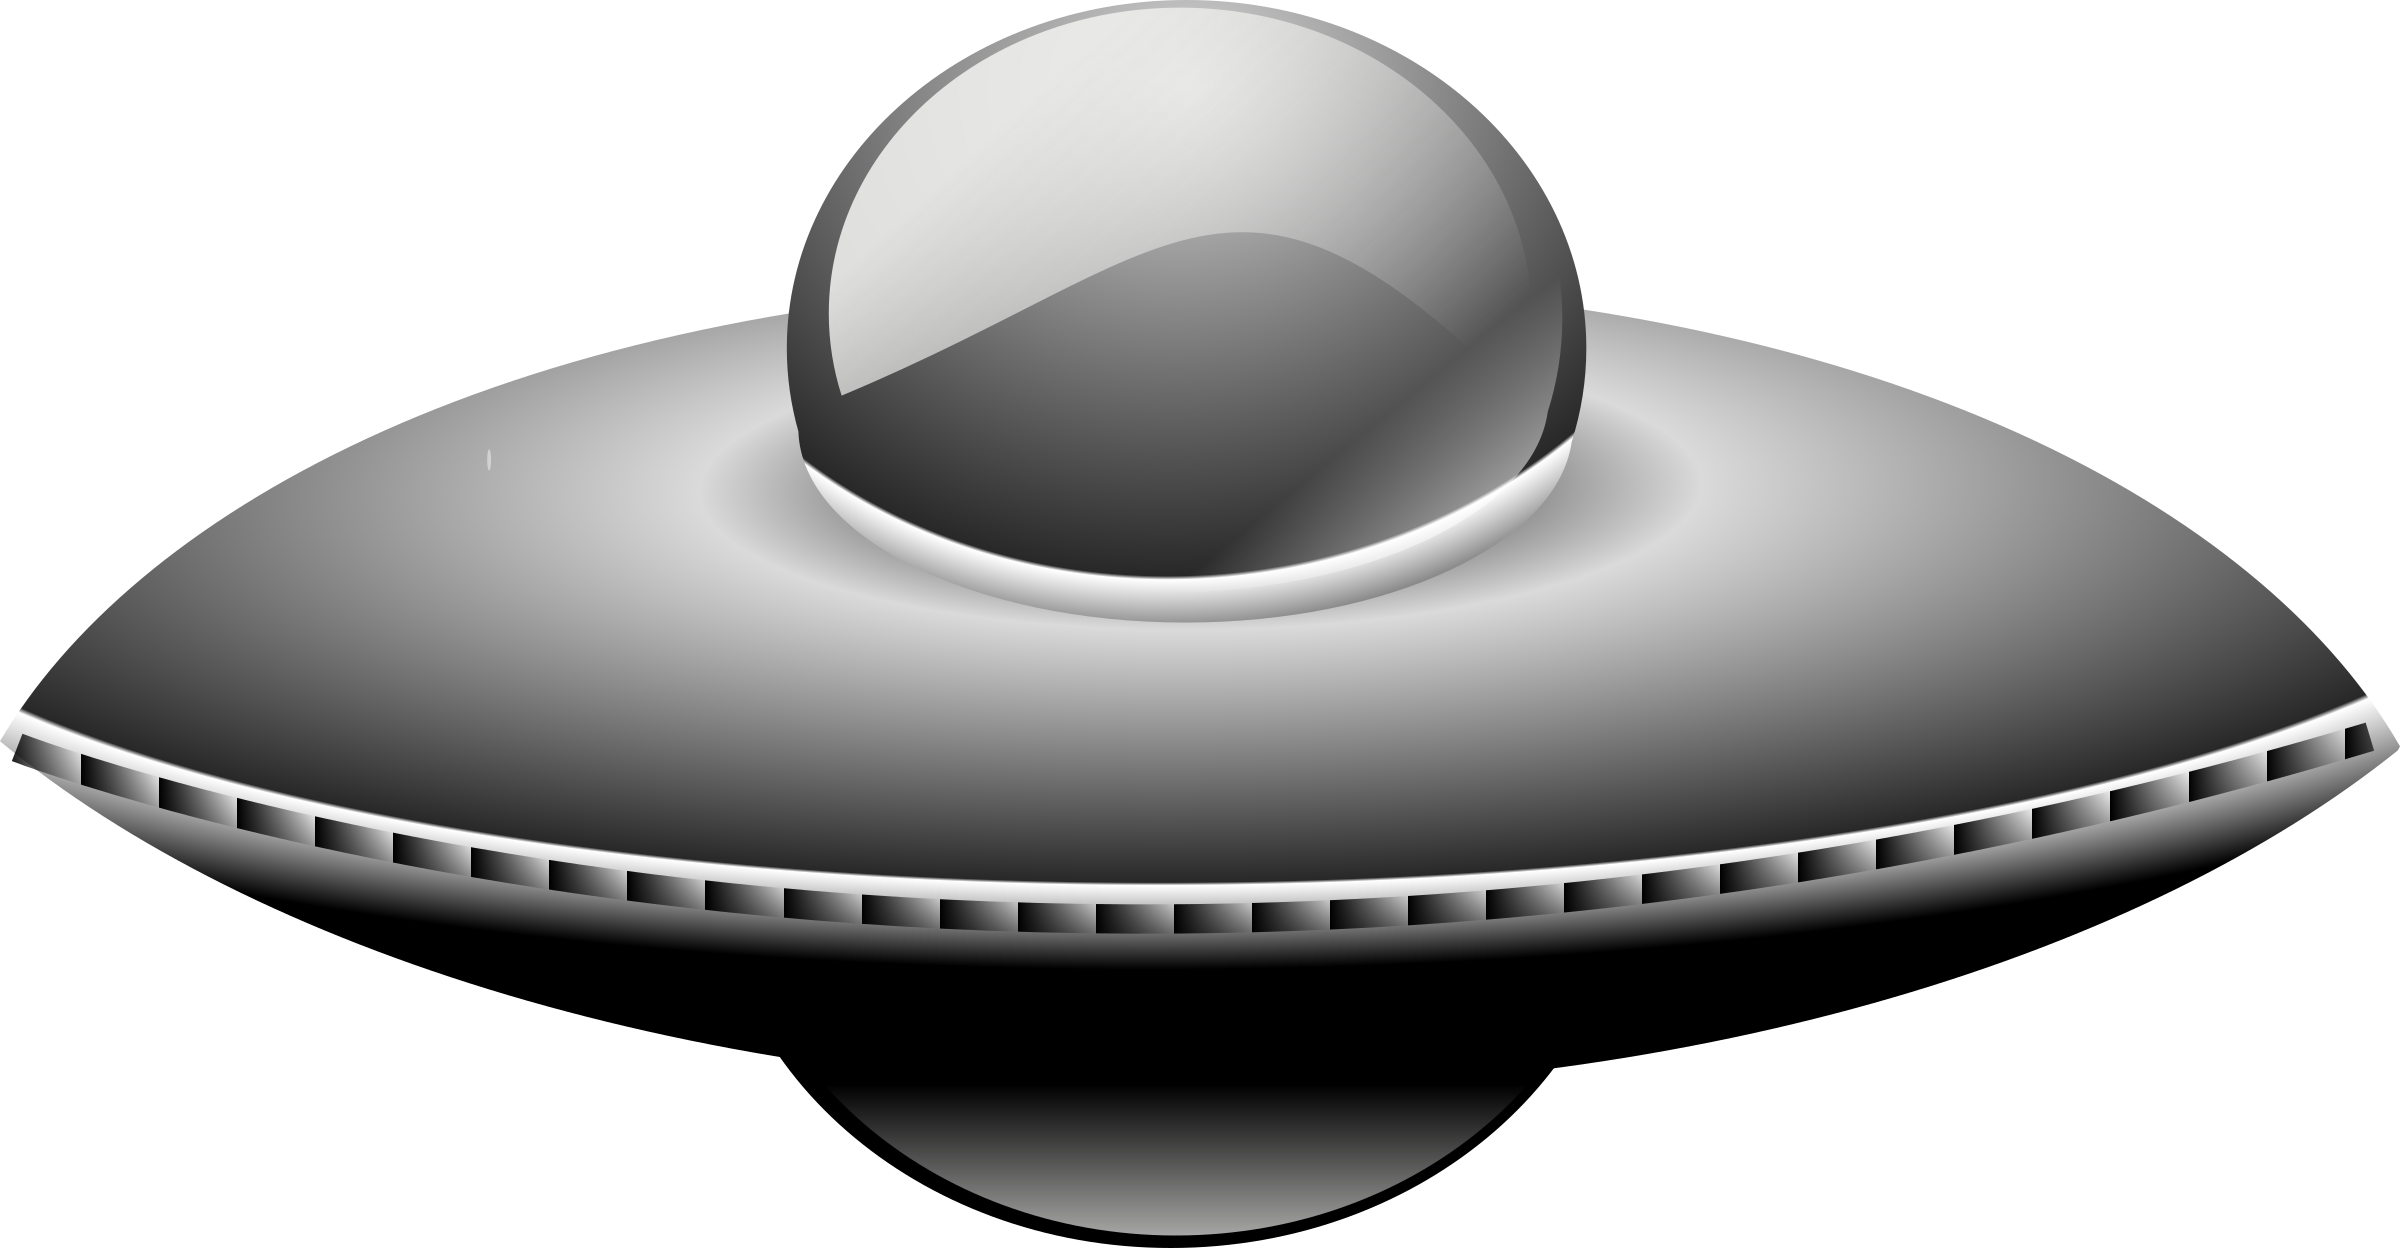 Ufo in metalic style by rg1024